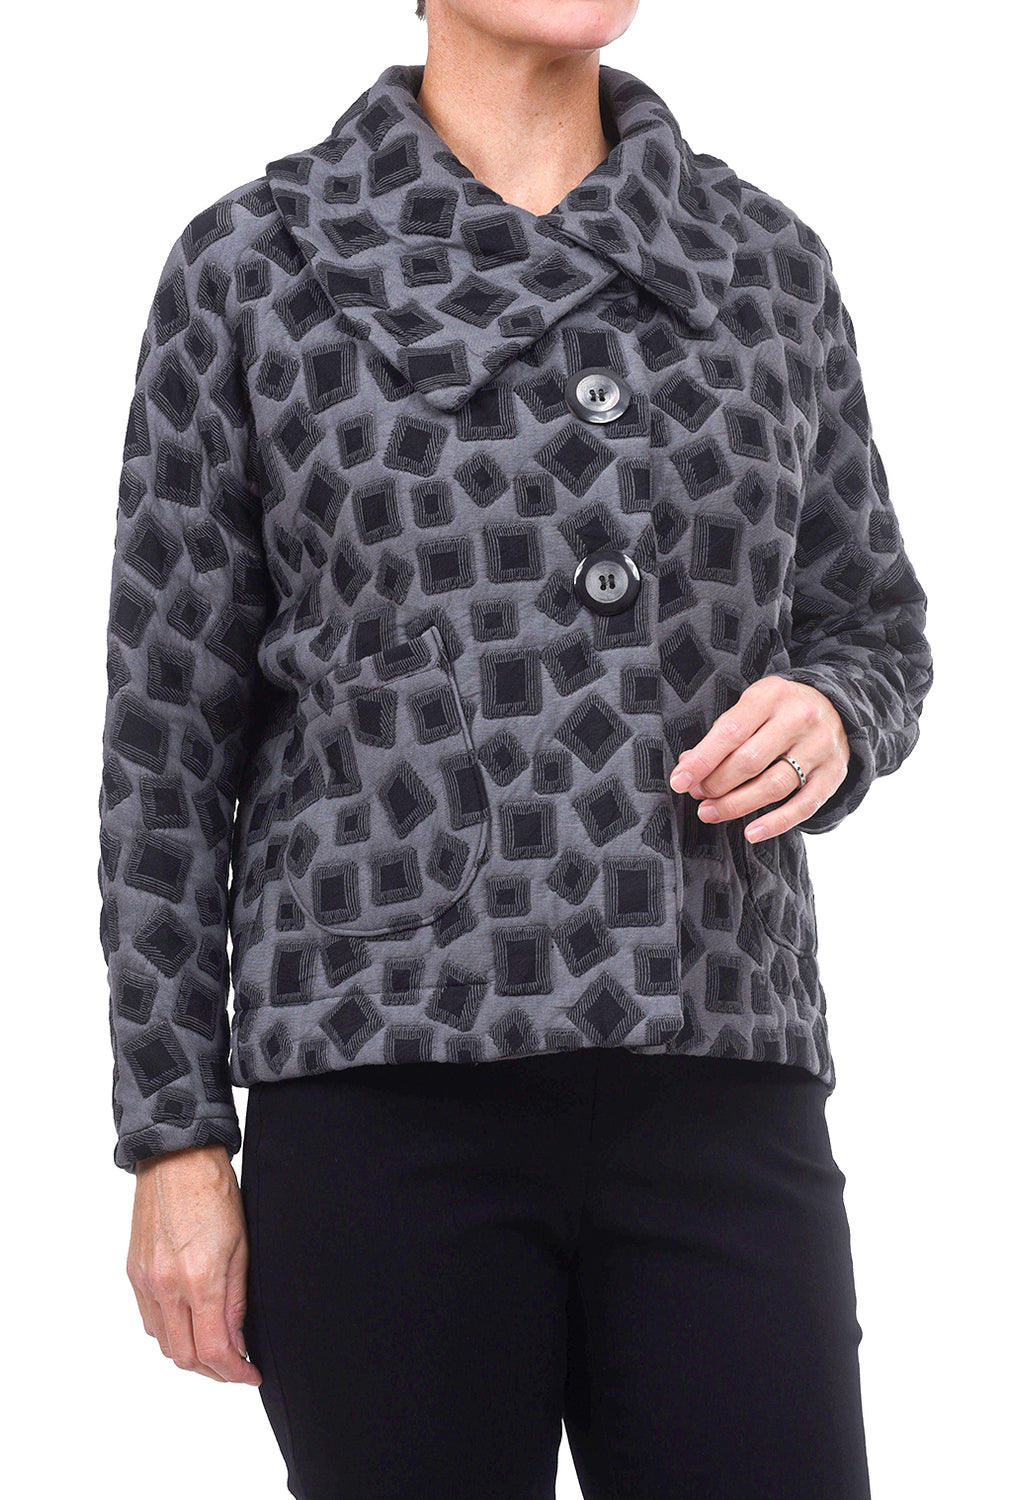 Niche Square Knit Sidecar Jacket, Gray Multi